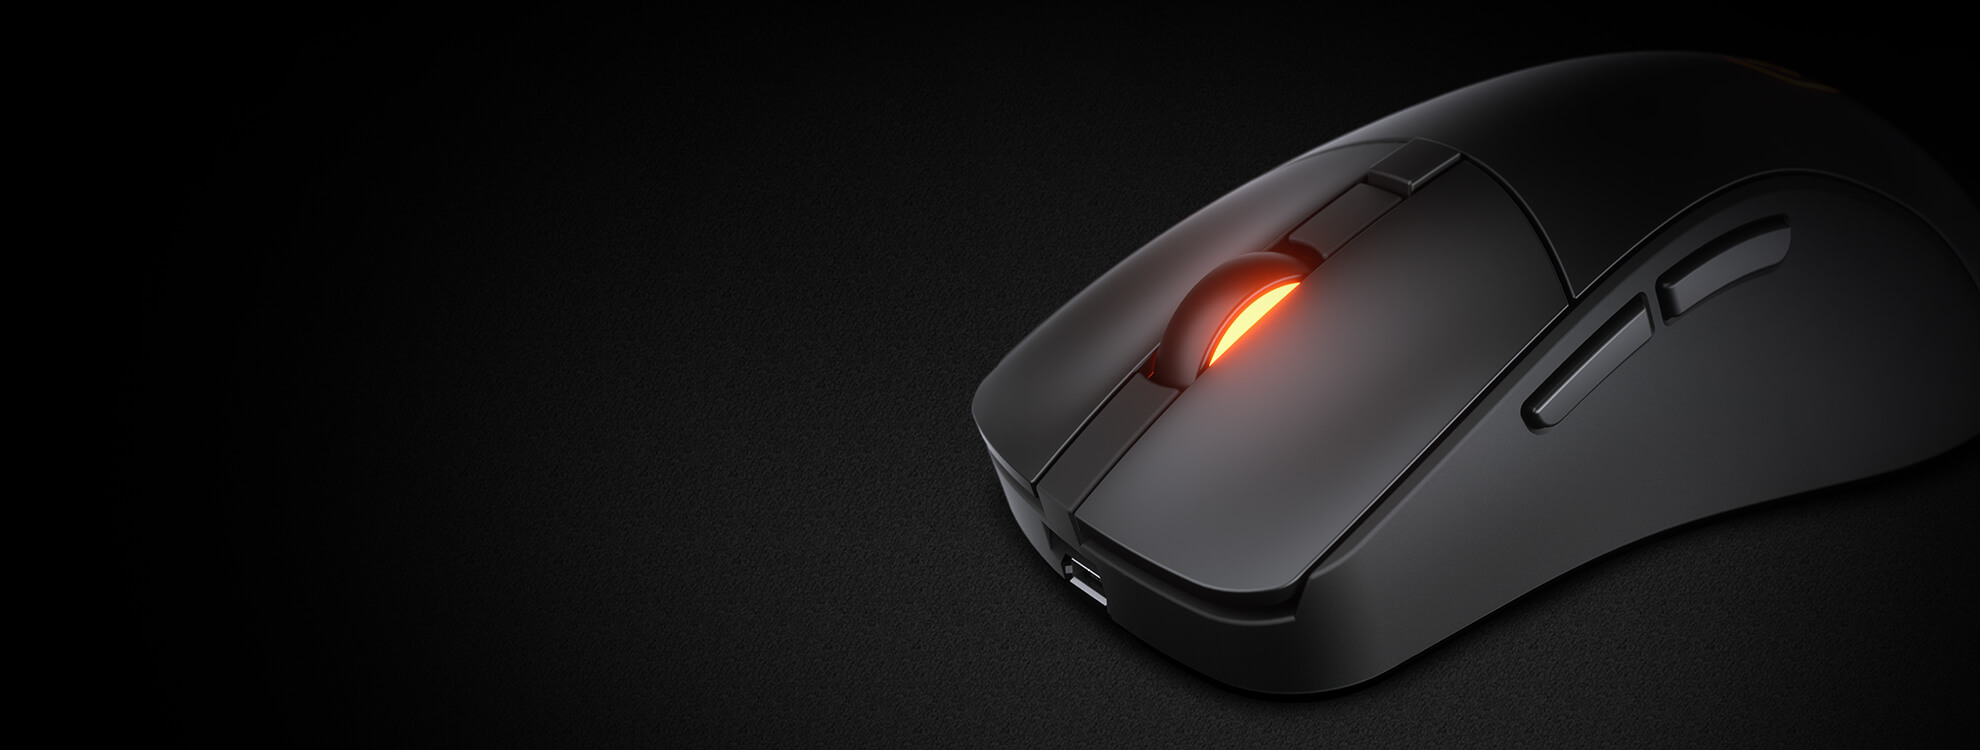 Souris COUGAR Surpassion RX